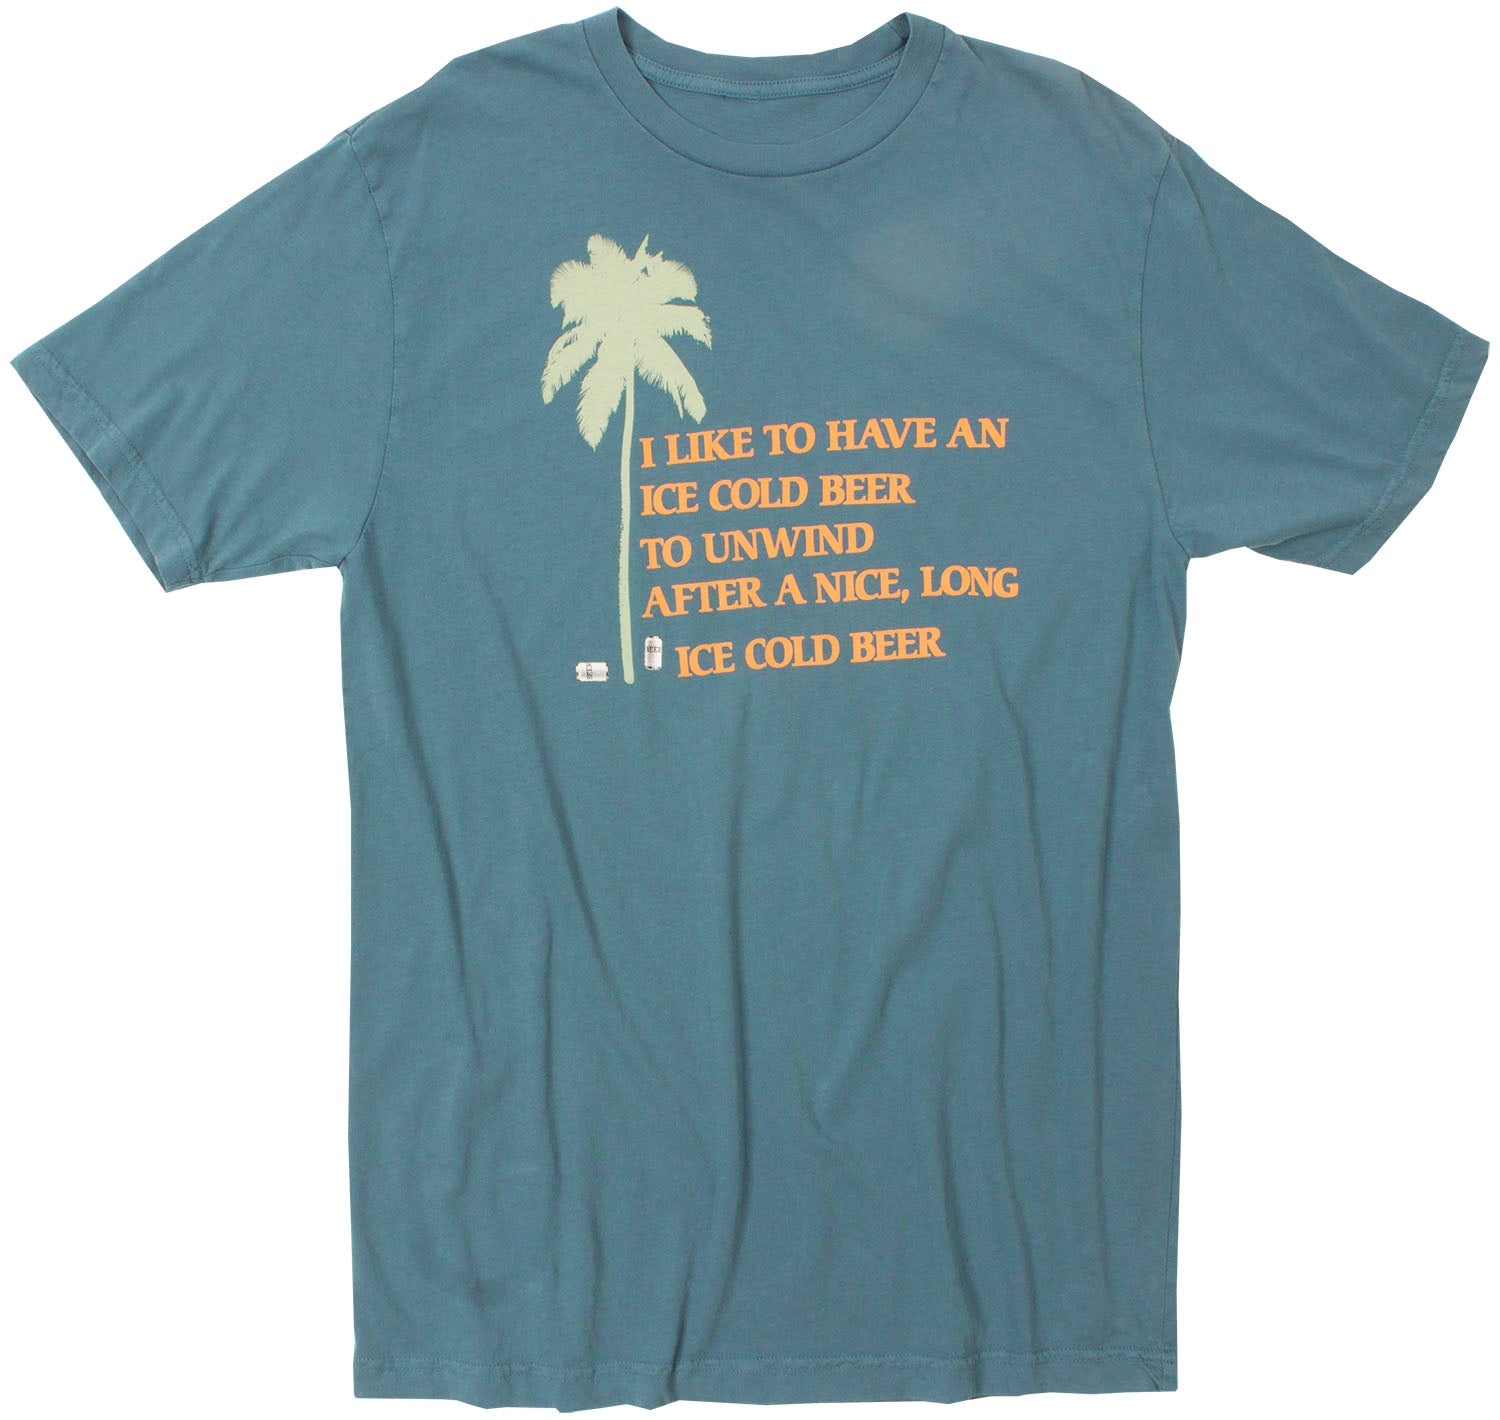 Unwind with an Ice Cold Beer graphic tee by Altru Apparel 900238de5ec